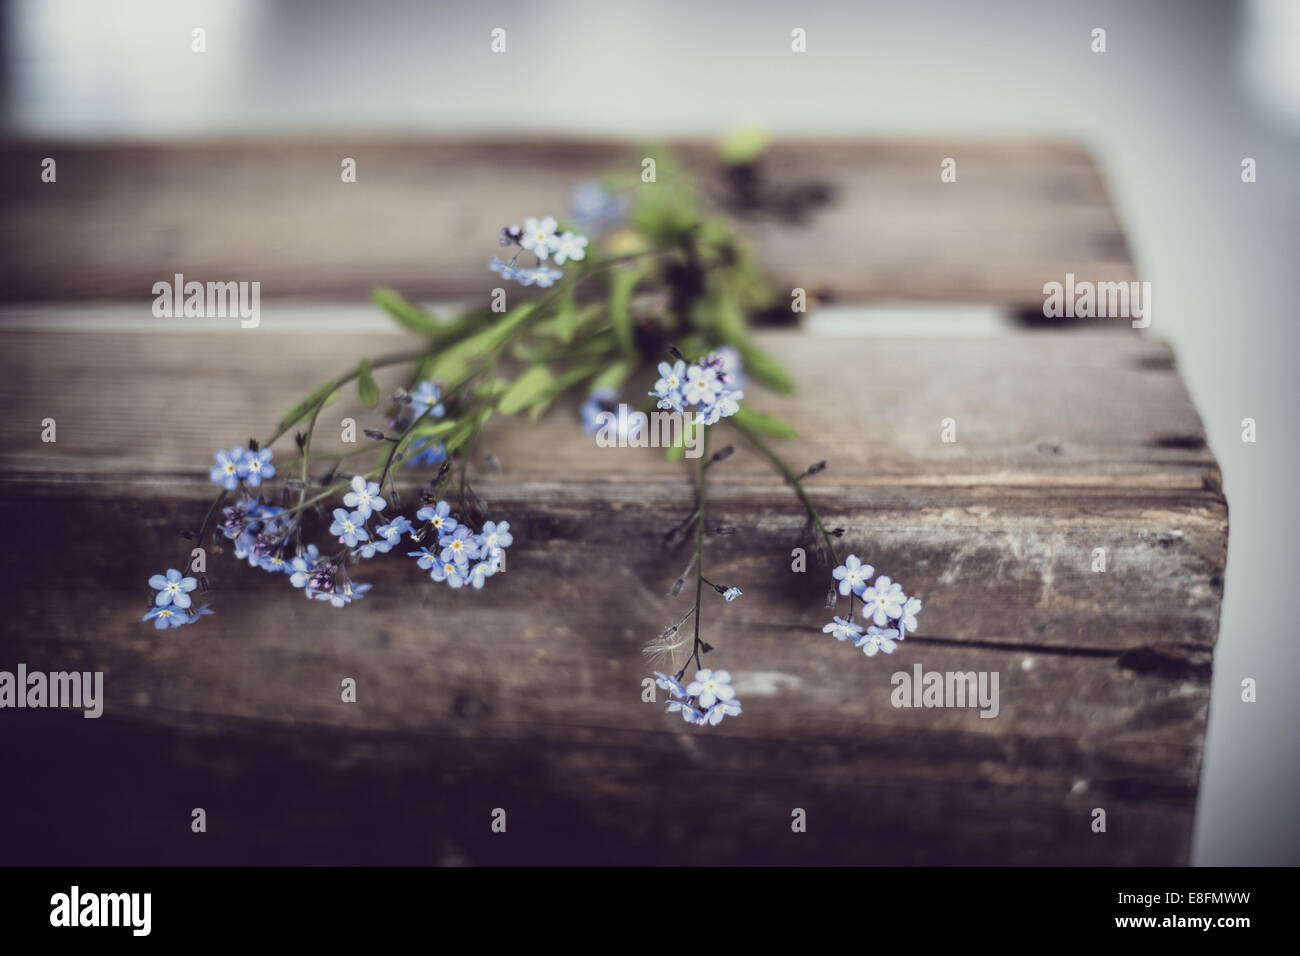 Forget-me-not flowers on old wooden box - Stock Image